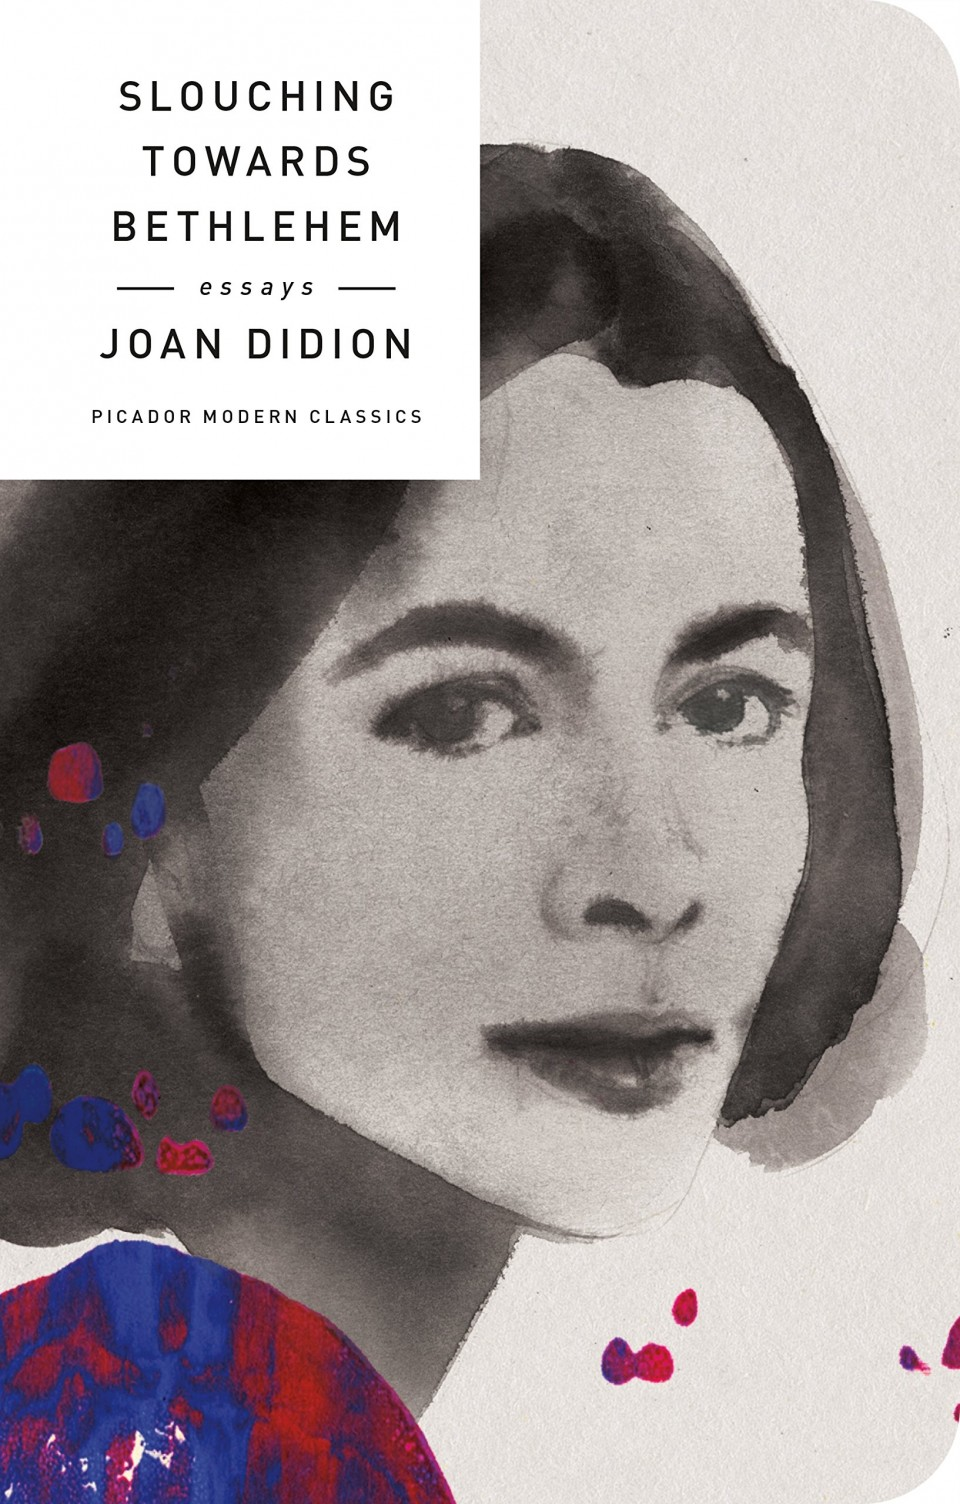 023 Slouching Towards Bethlehem Essay Example Joan Didion Singular Essays Collections On Santa Ana Winds Amazon 960